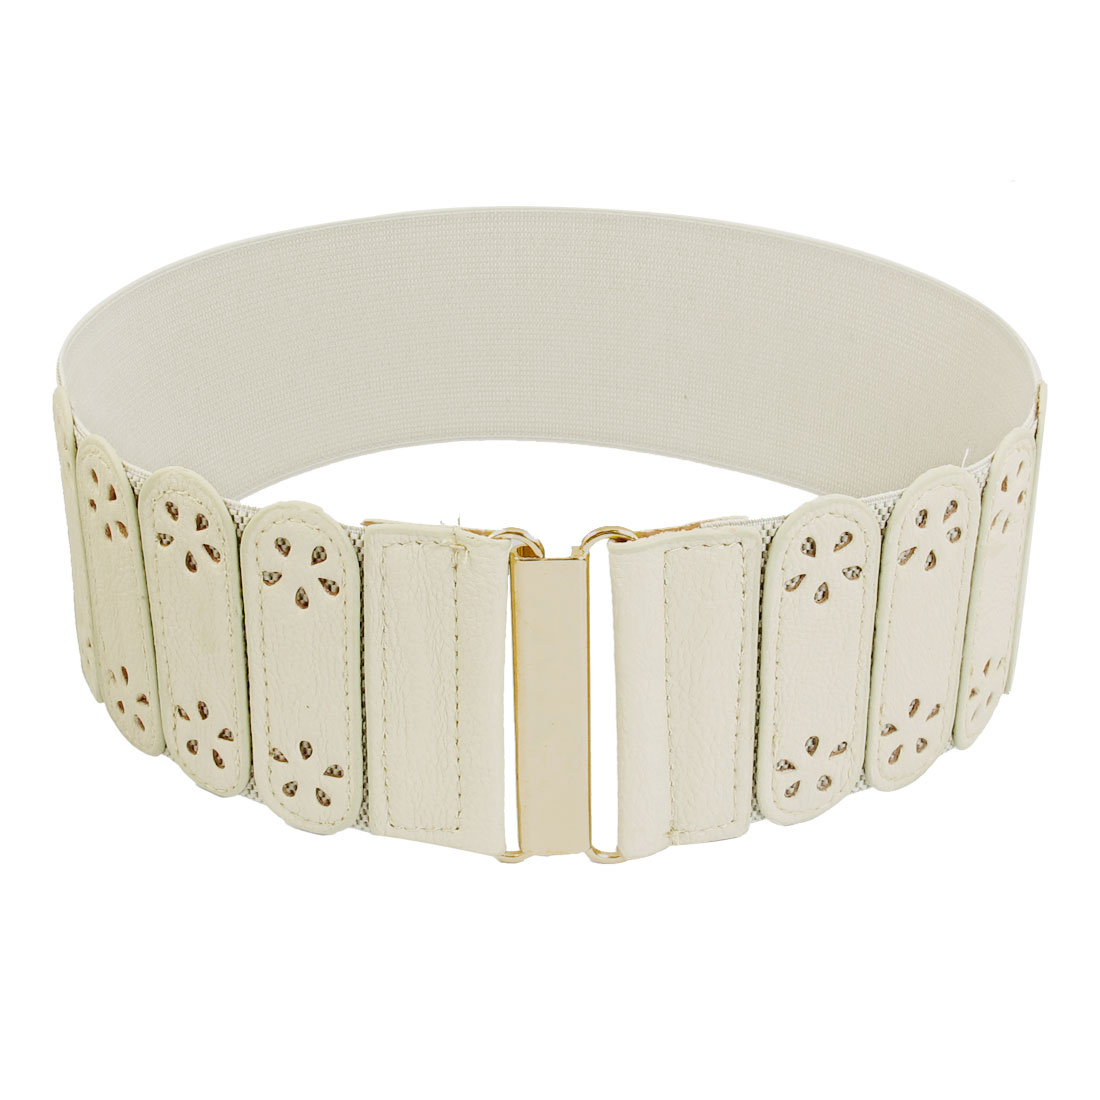 Ladies Hollow Flower Decor Interlocking Closure Stretchy Band Waist Belt Off White